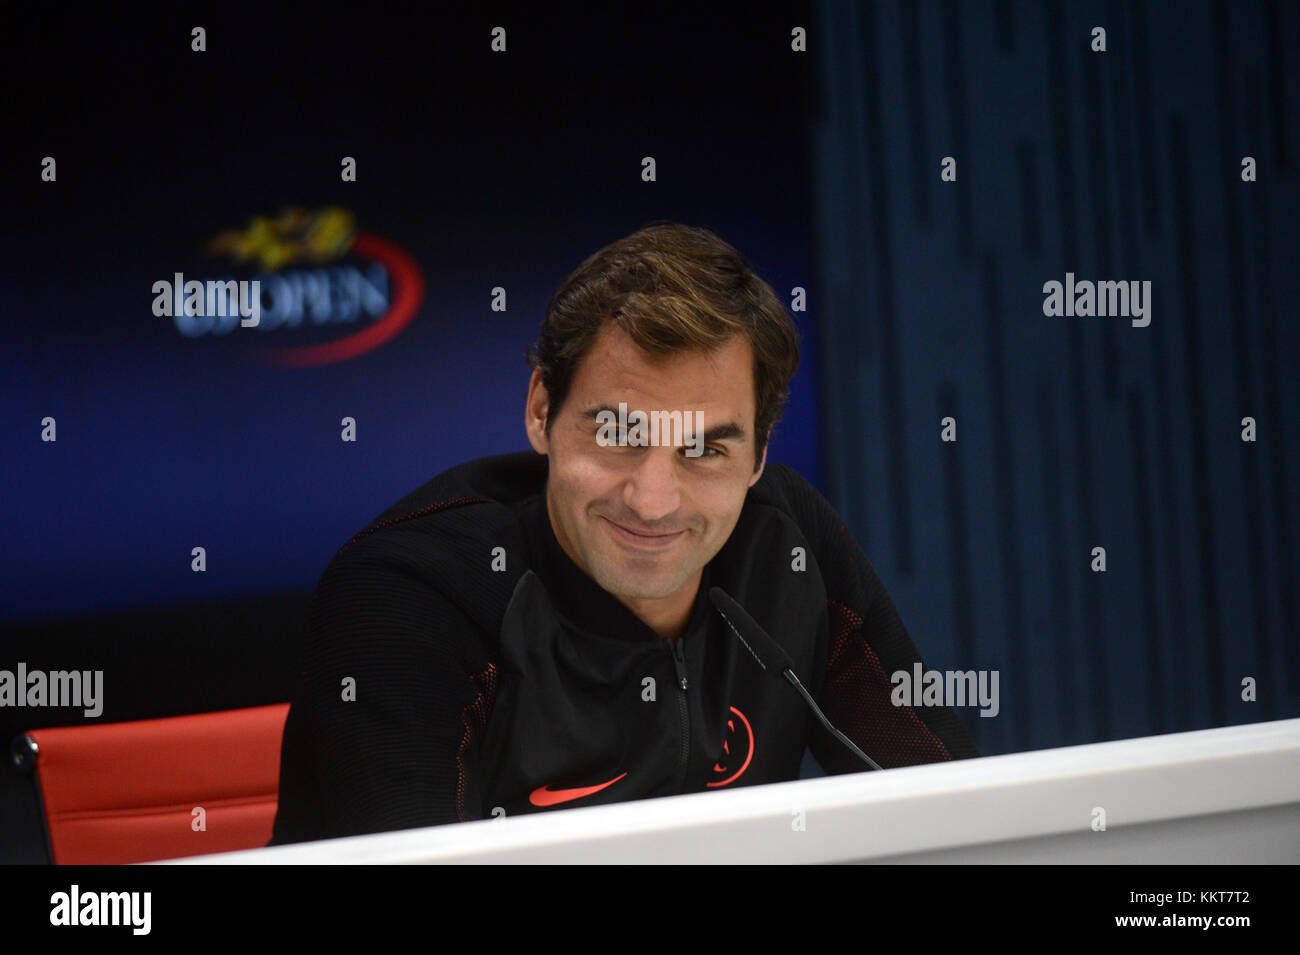 NEW YORK, USA - AUGUST 26: Roger Federer speaks during a press conference ahead of 2017 US Open Tennis Championships - Stock Image